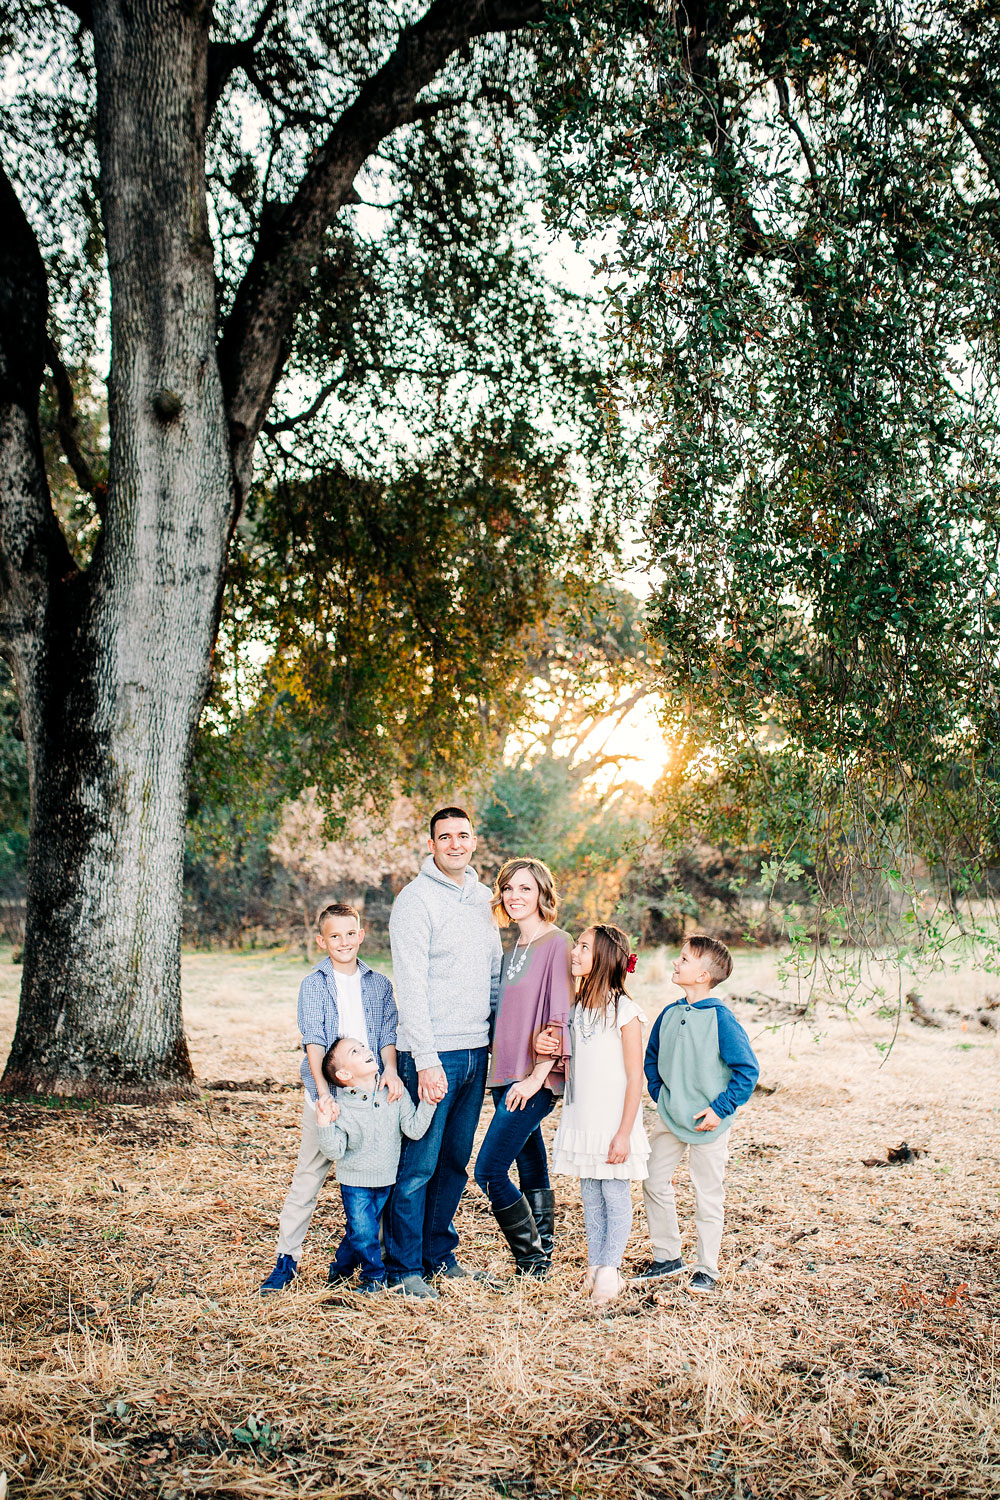 A happy family gathers under a tree for pictures during a lifestyle photo session with Amy Wright Photography in Roseville, California.